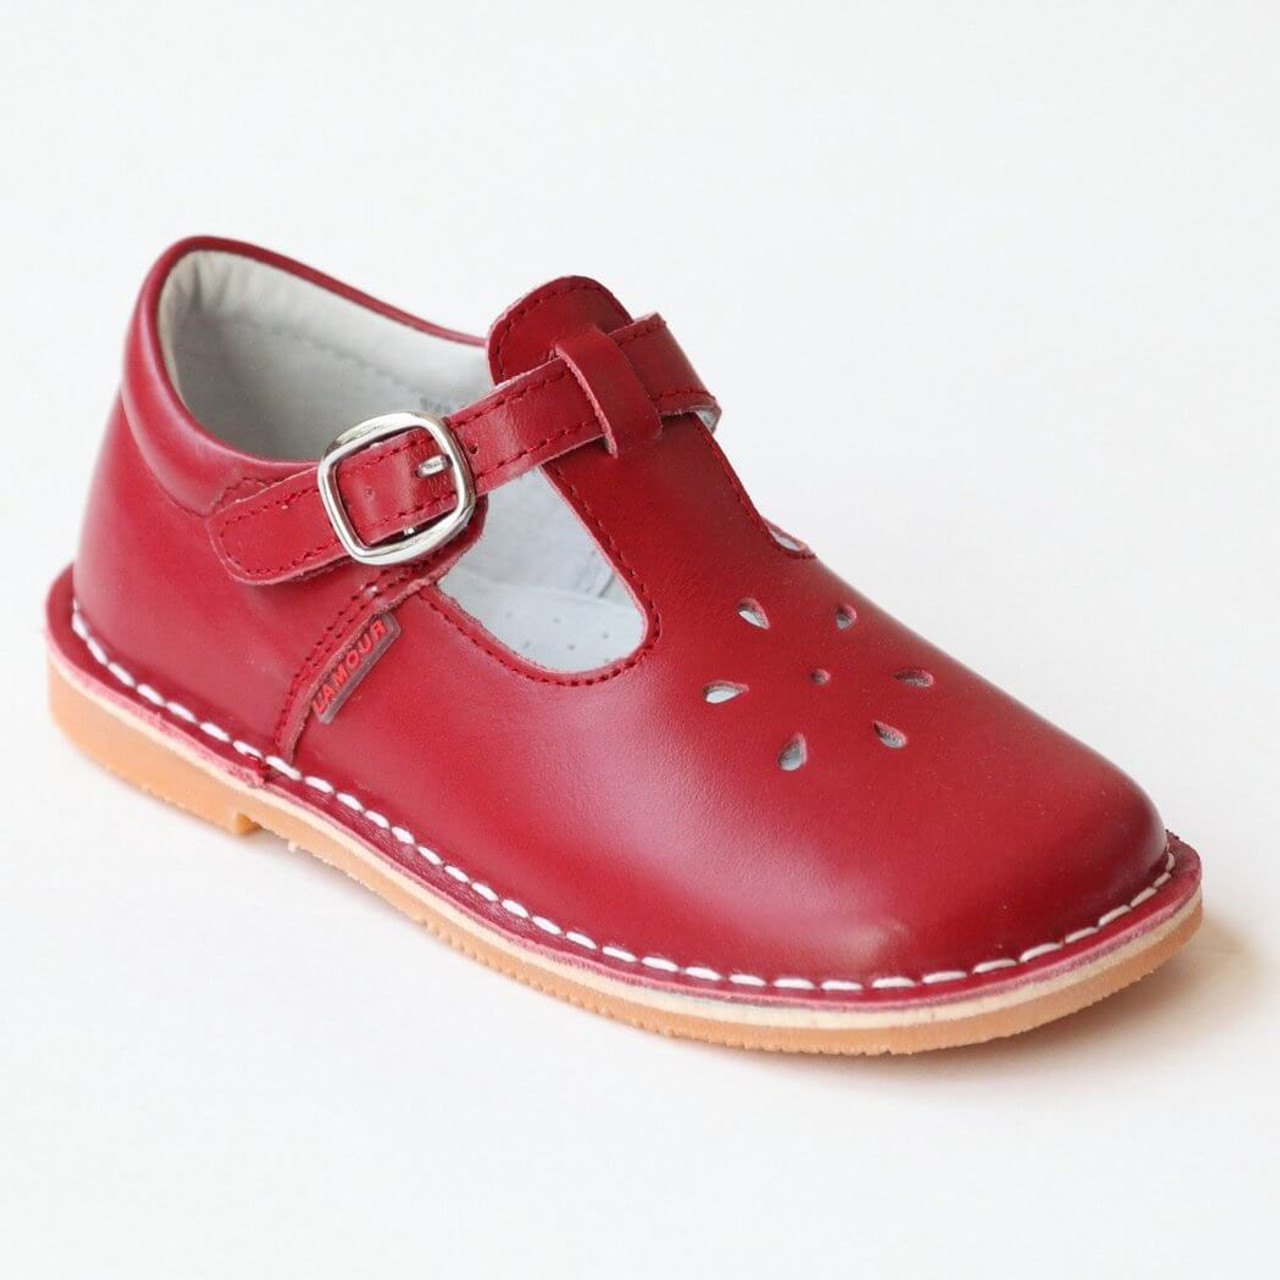 Quality Leather Toddler Shoes